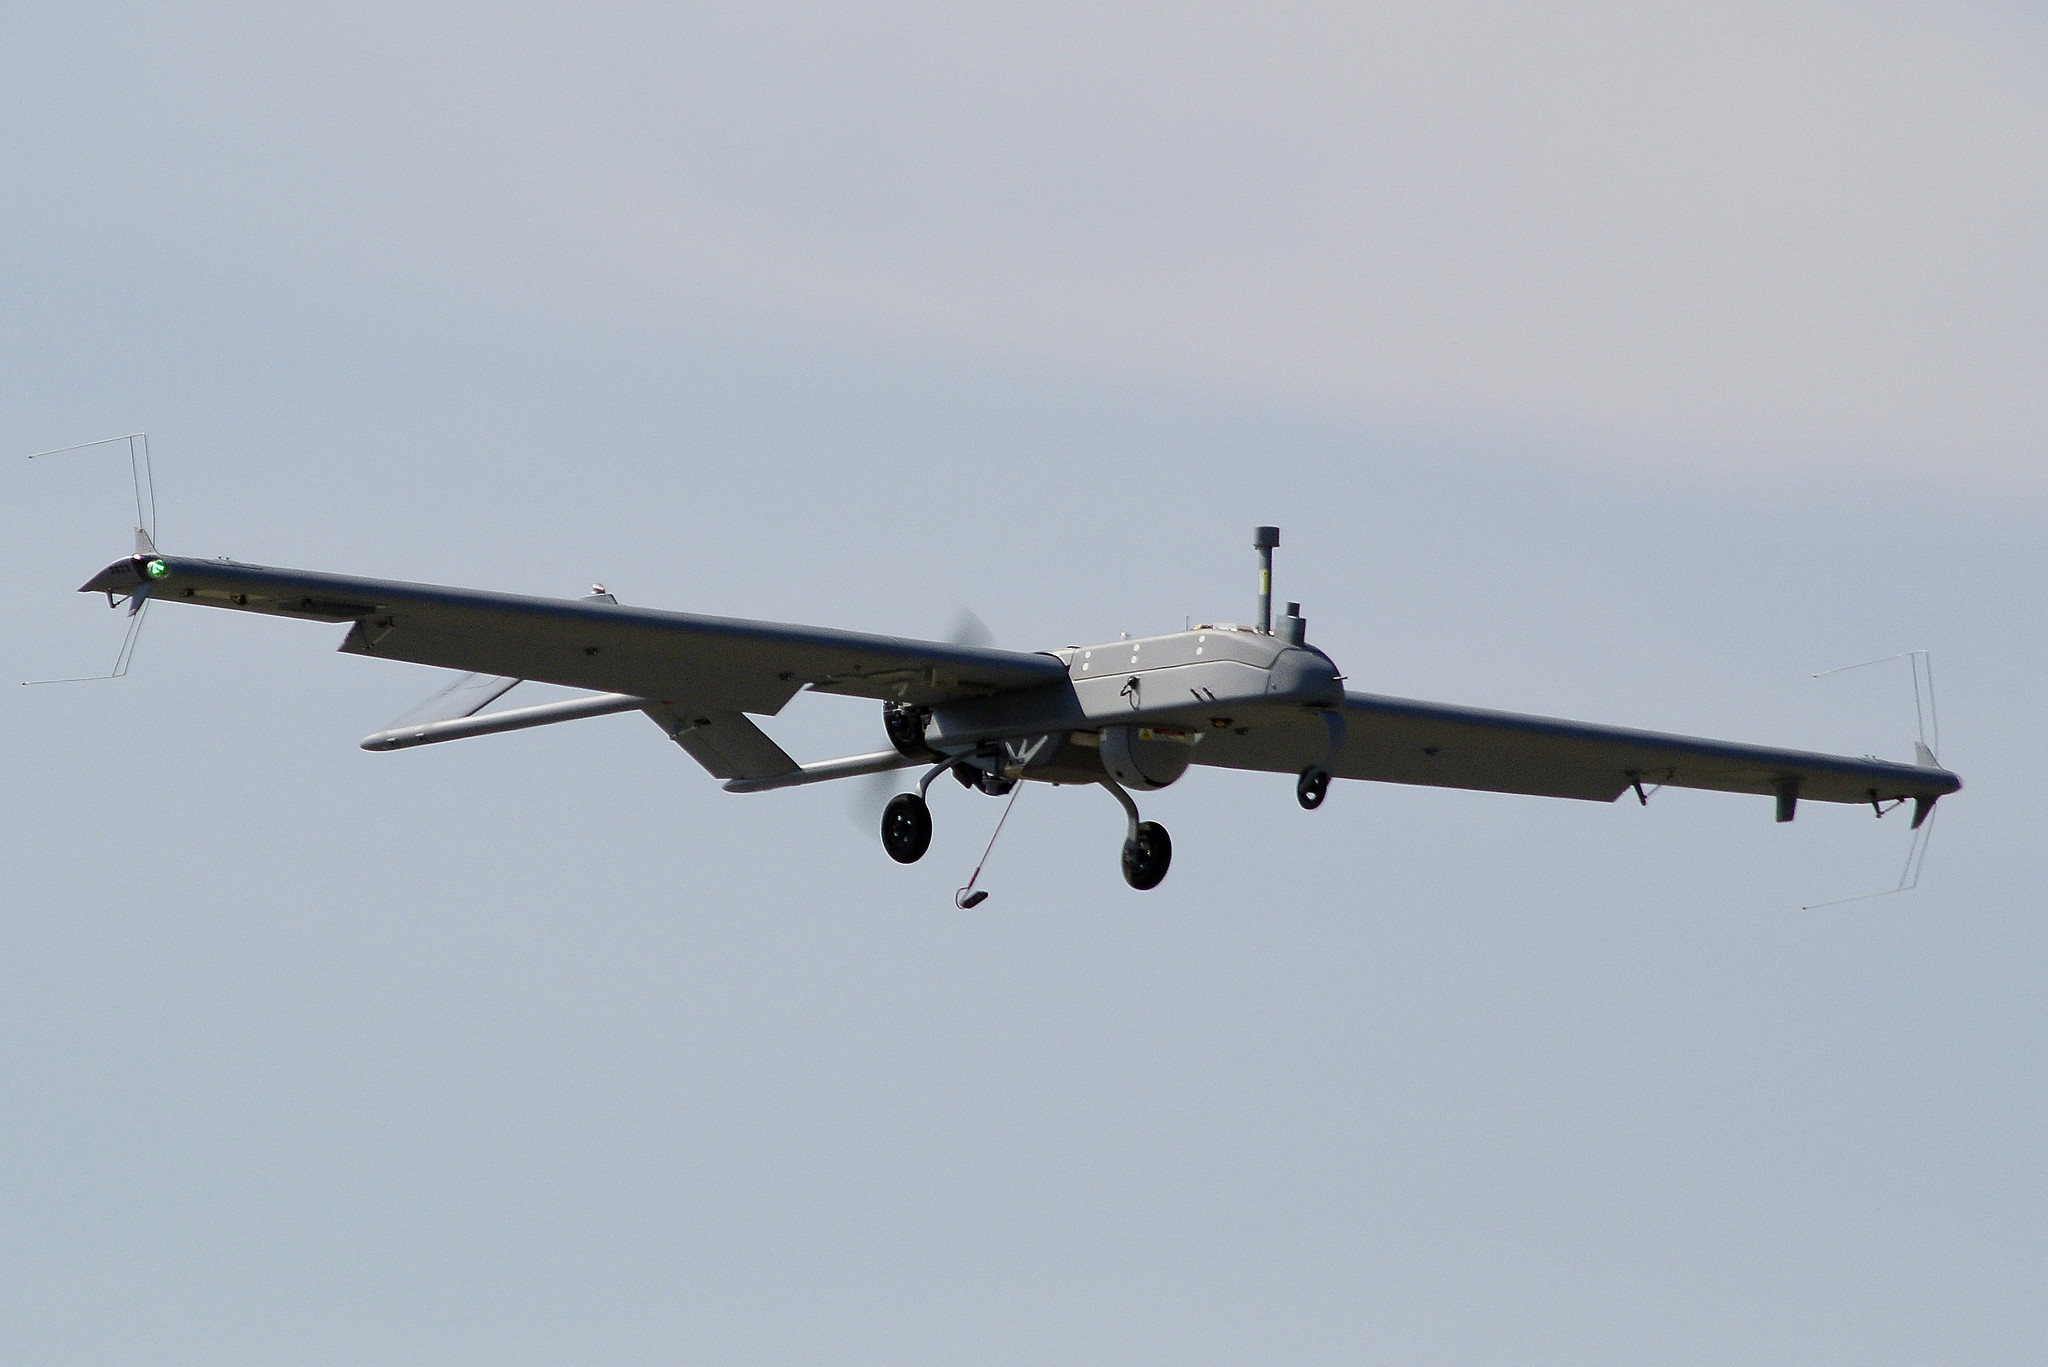 Textron Systems eyes commercial growth for drones it makes in